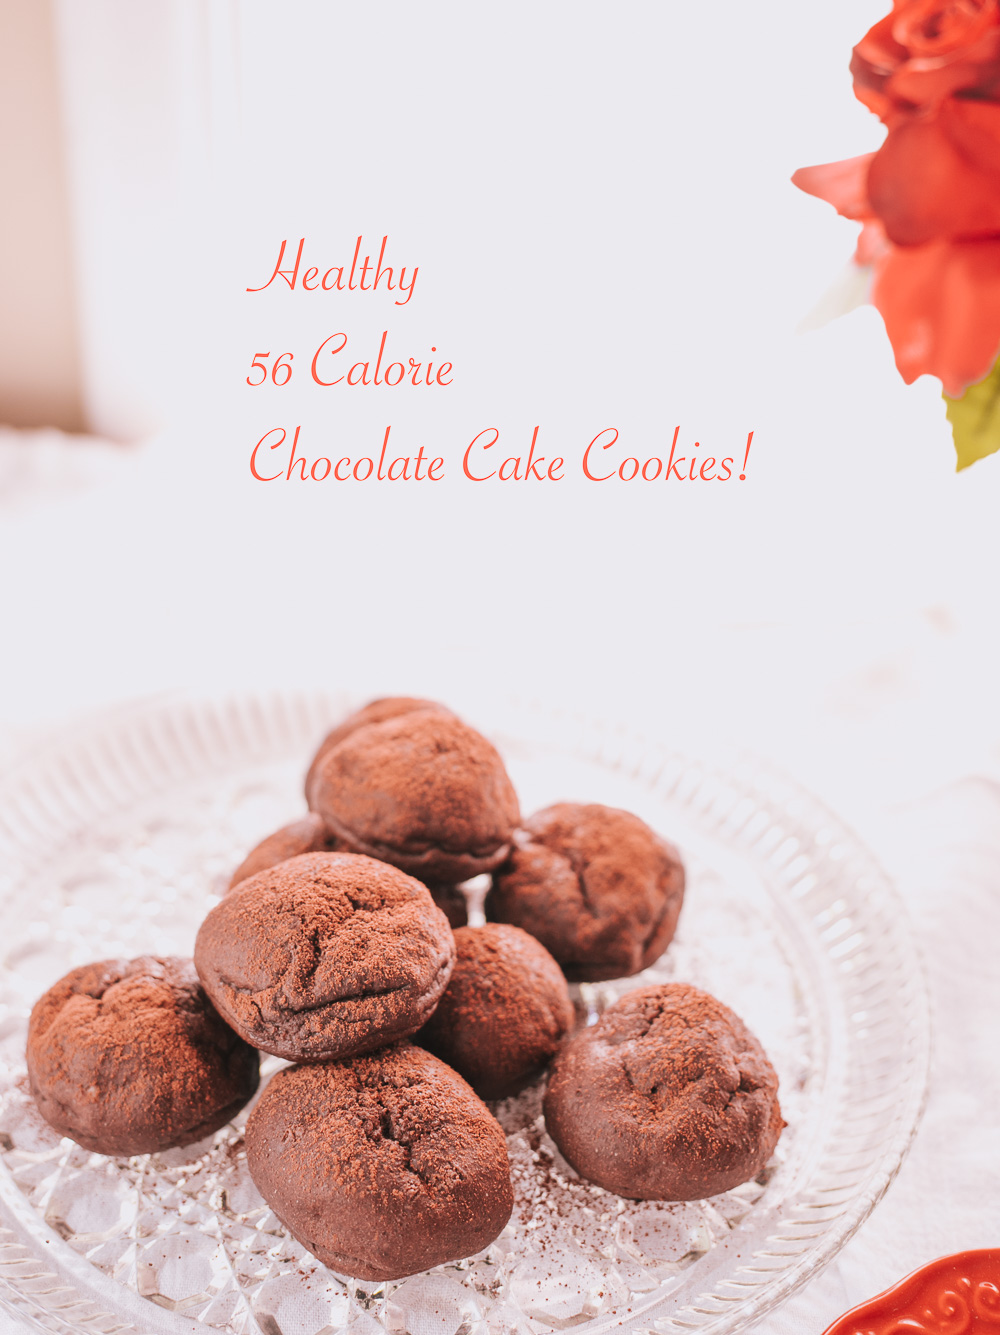 56 Calorie Chocolate Cake Cookies